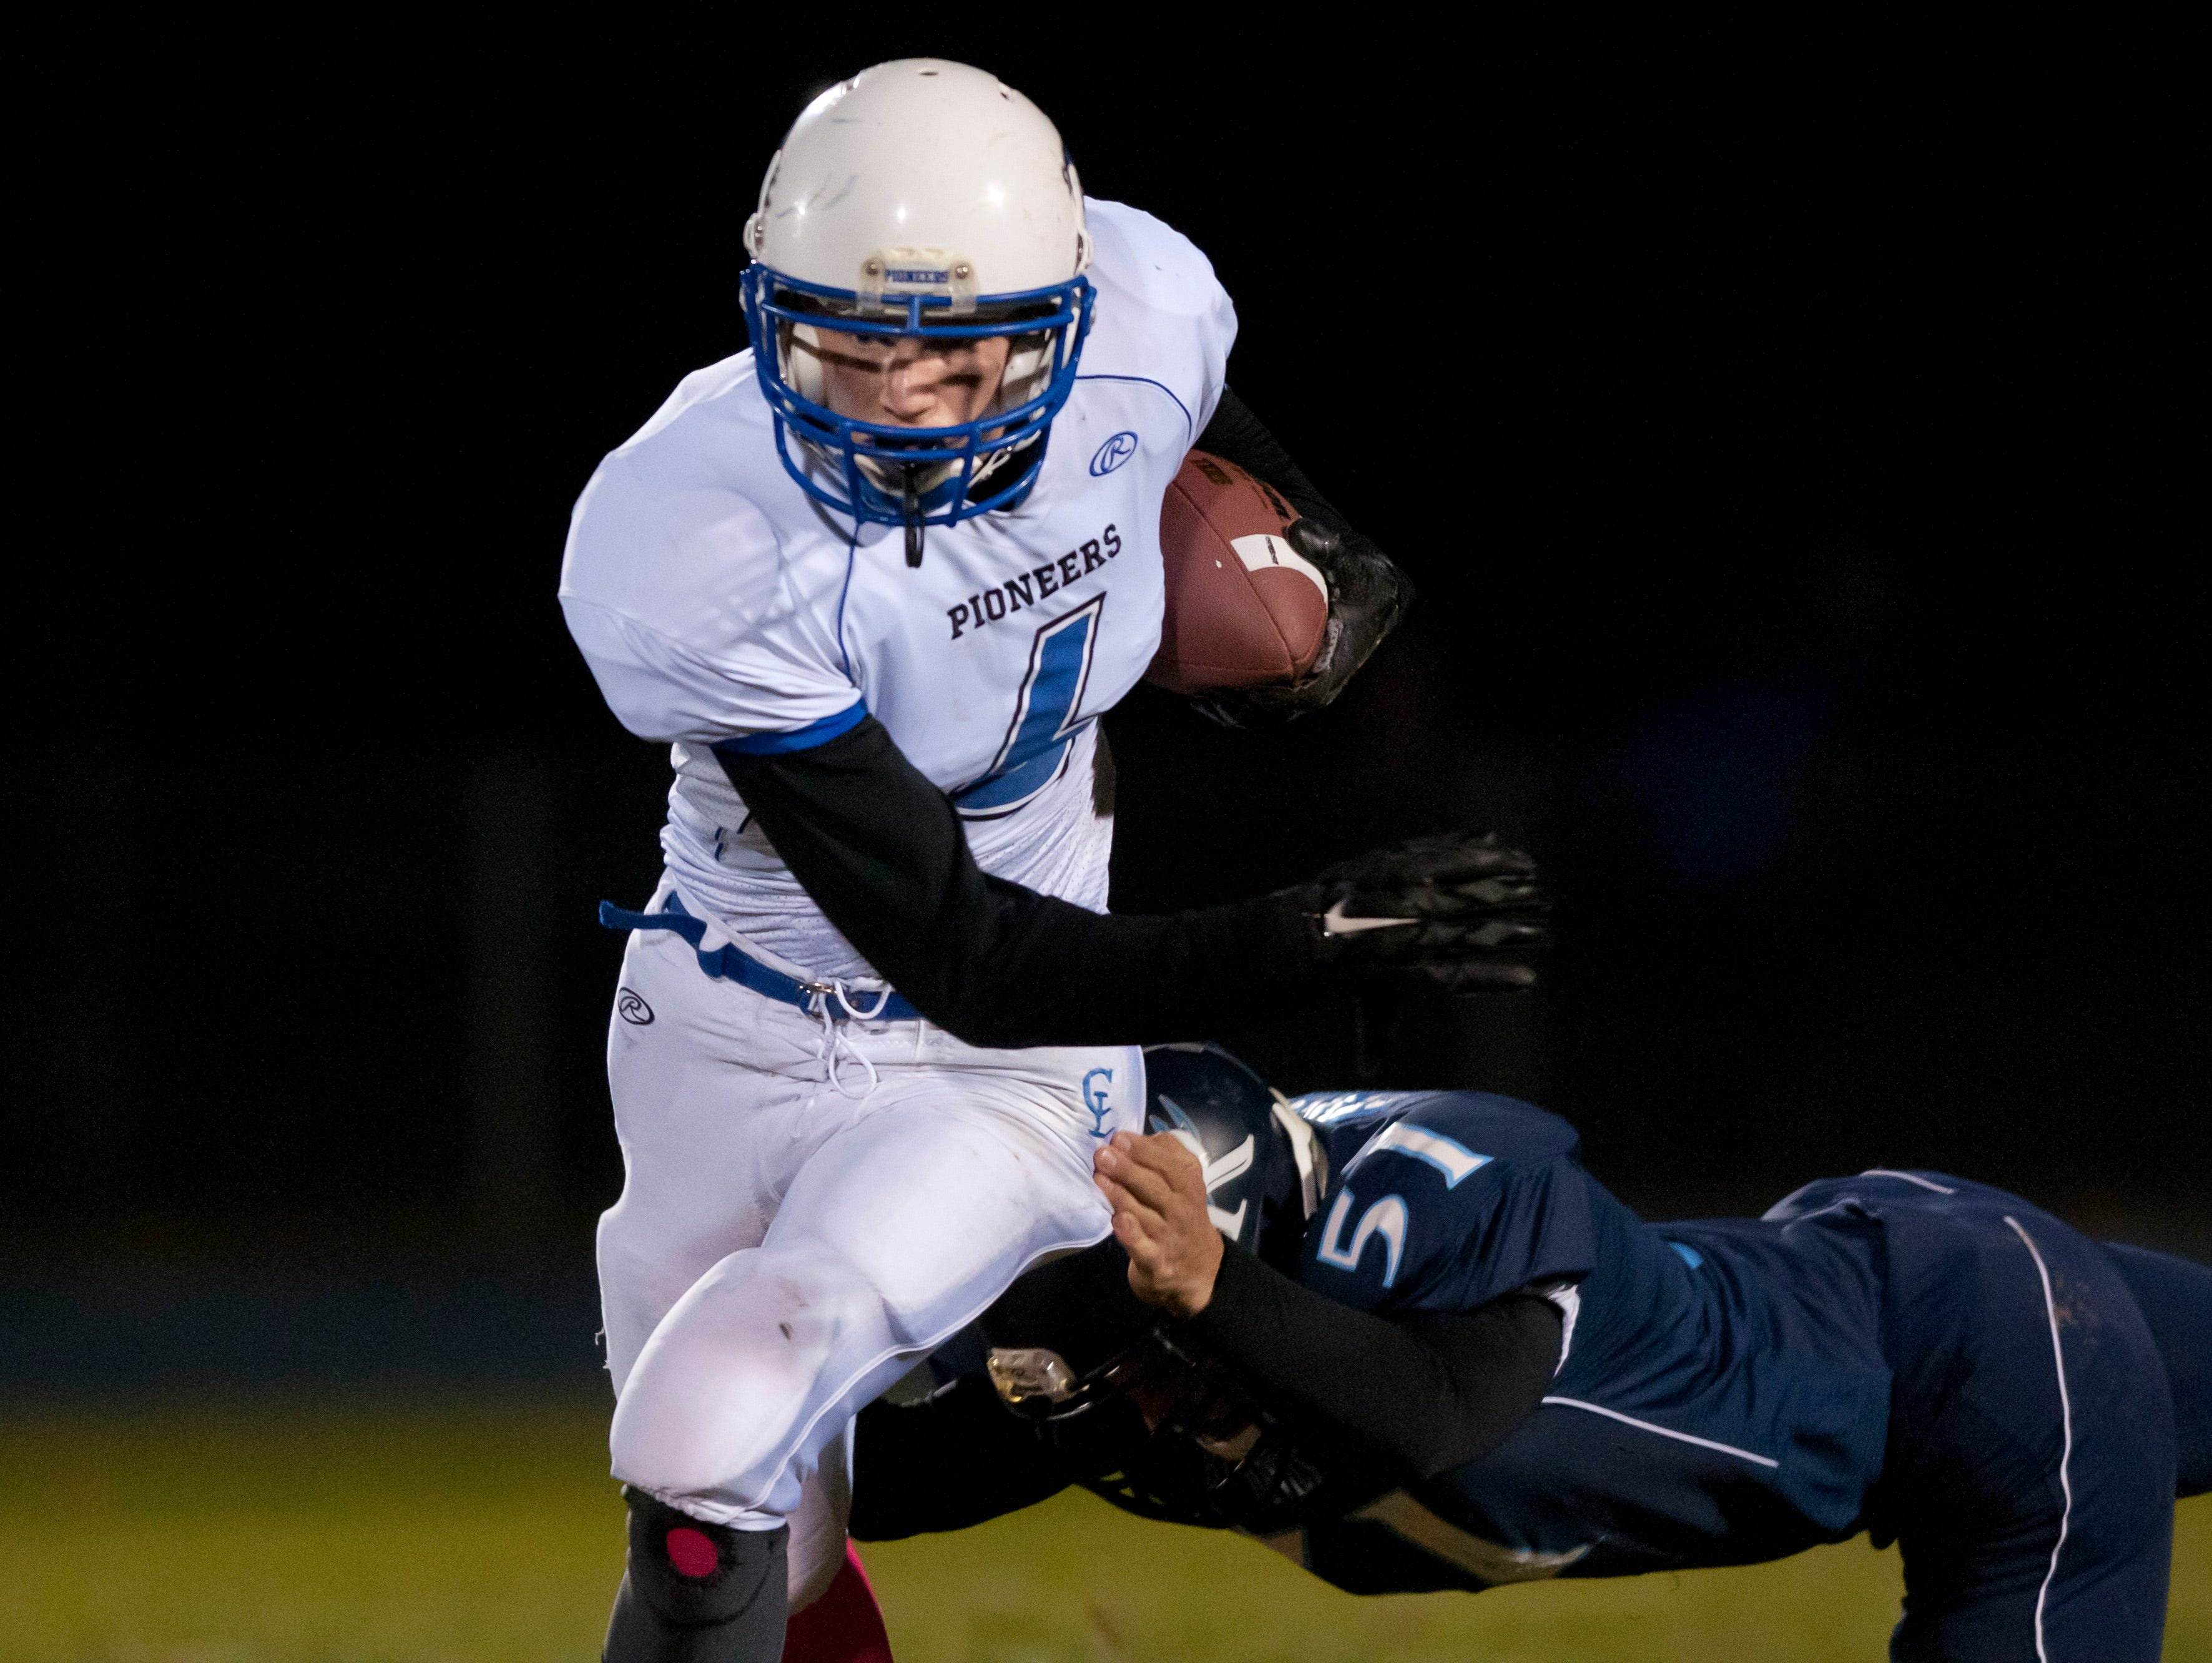 Cros-Lex's Christopher Zielinski runs the ball and breaks a tackle by Richmond's Hunter Bergeon during a football game Friday, October 30, 2015 at Richmond High School.